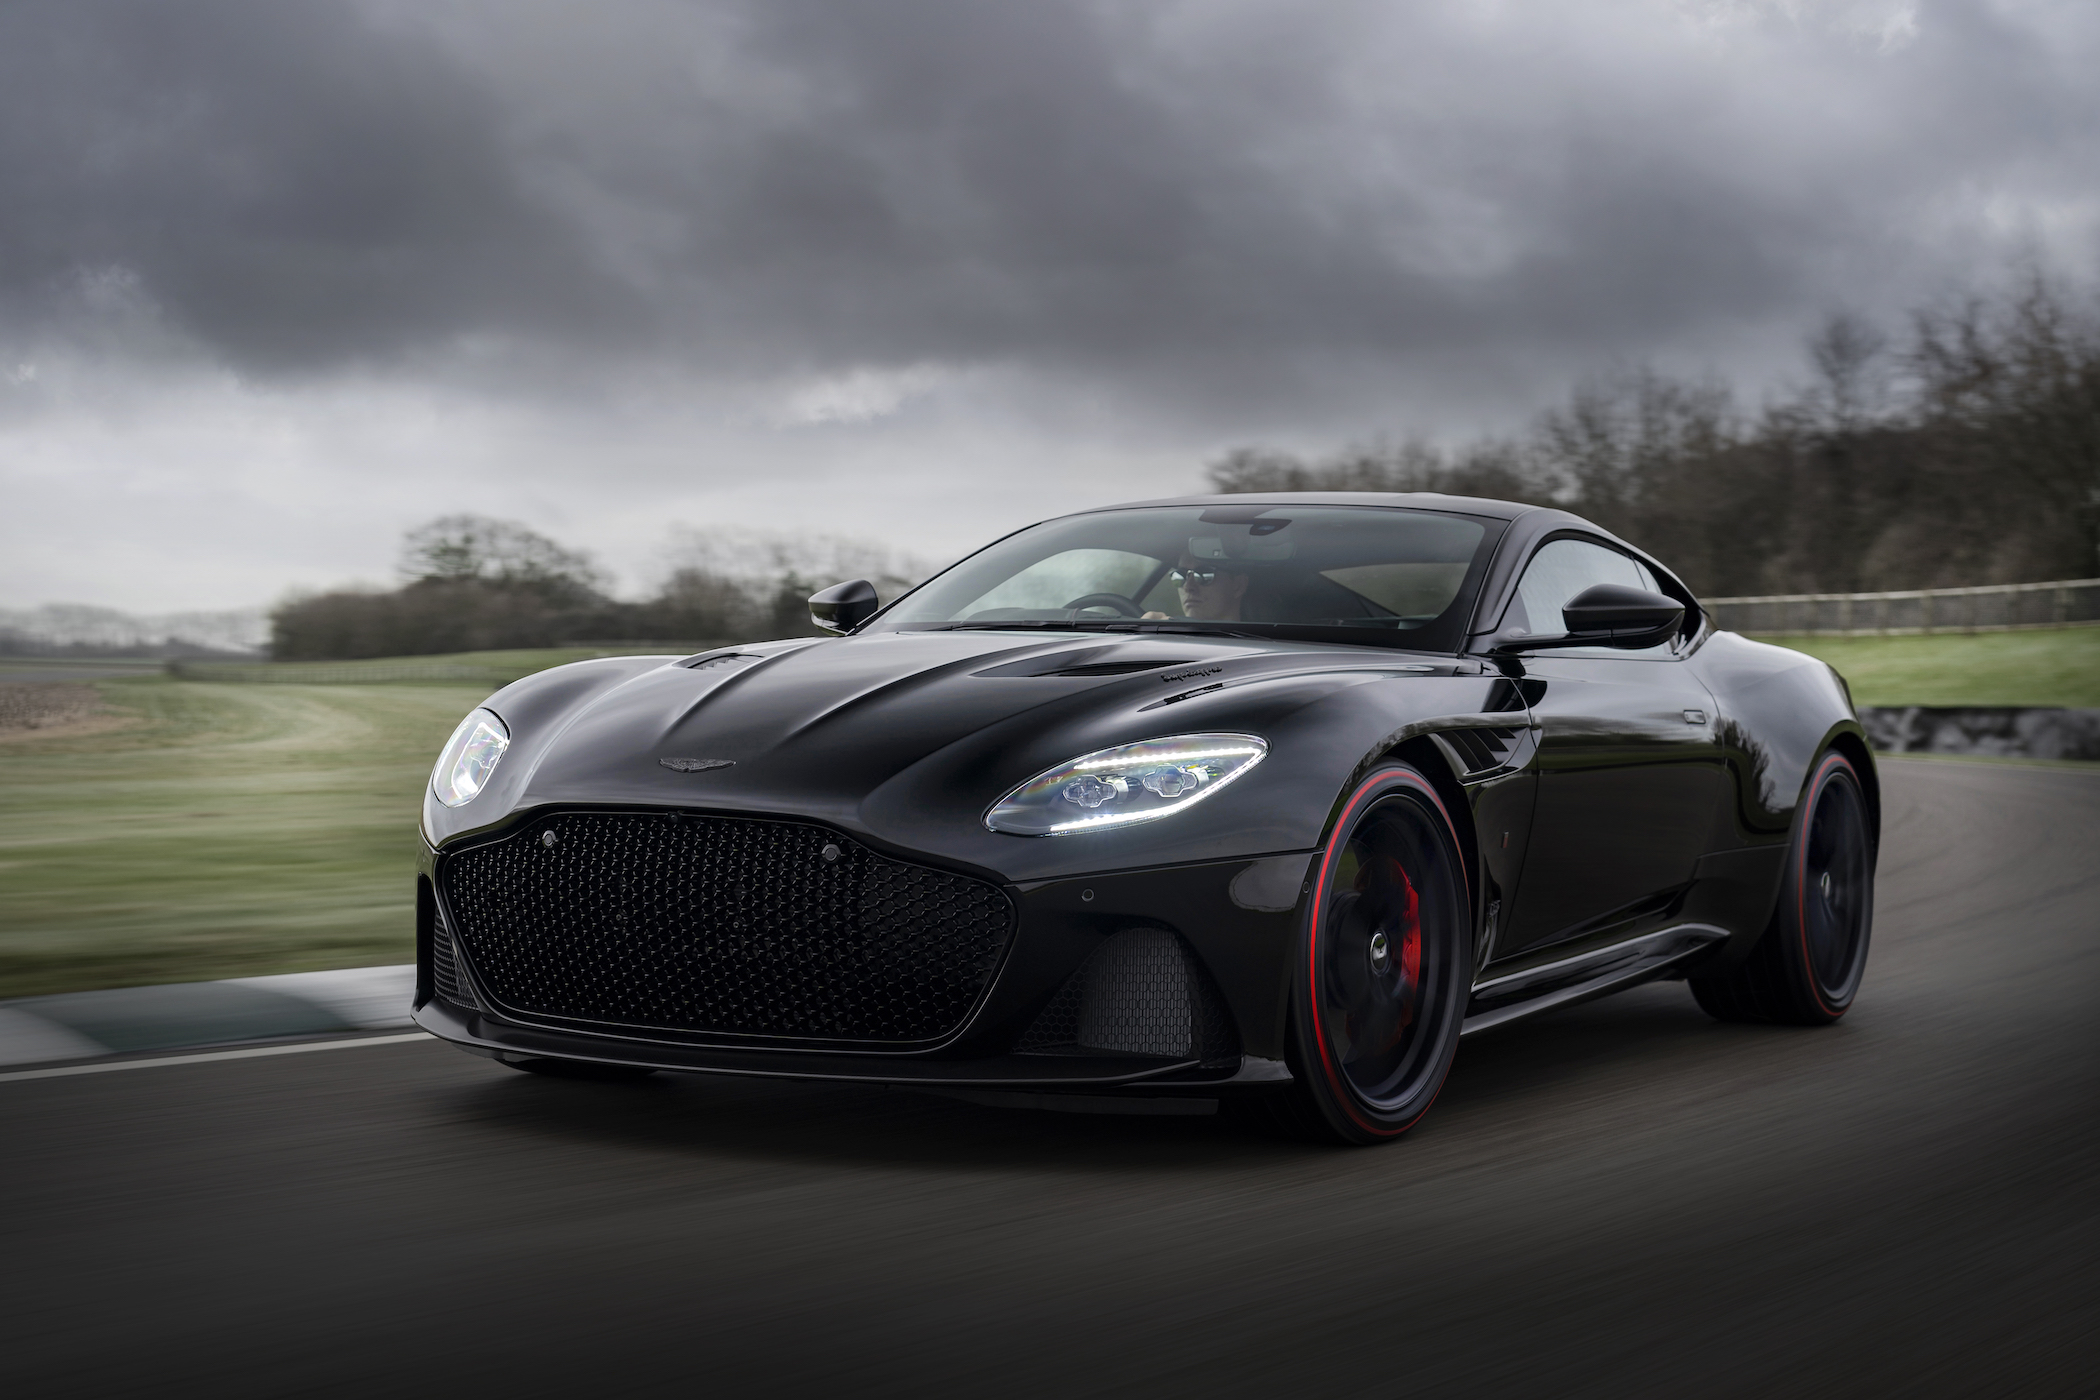 Aston_Martin_DBS_Superleggera_TAG_Heuer_Edition_1-jpg